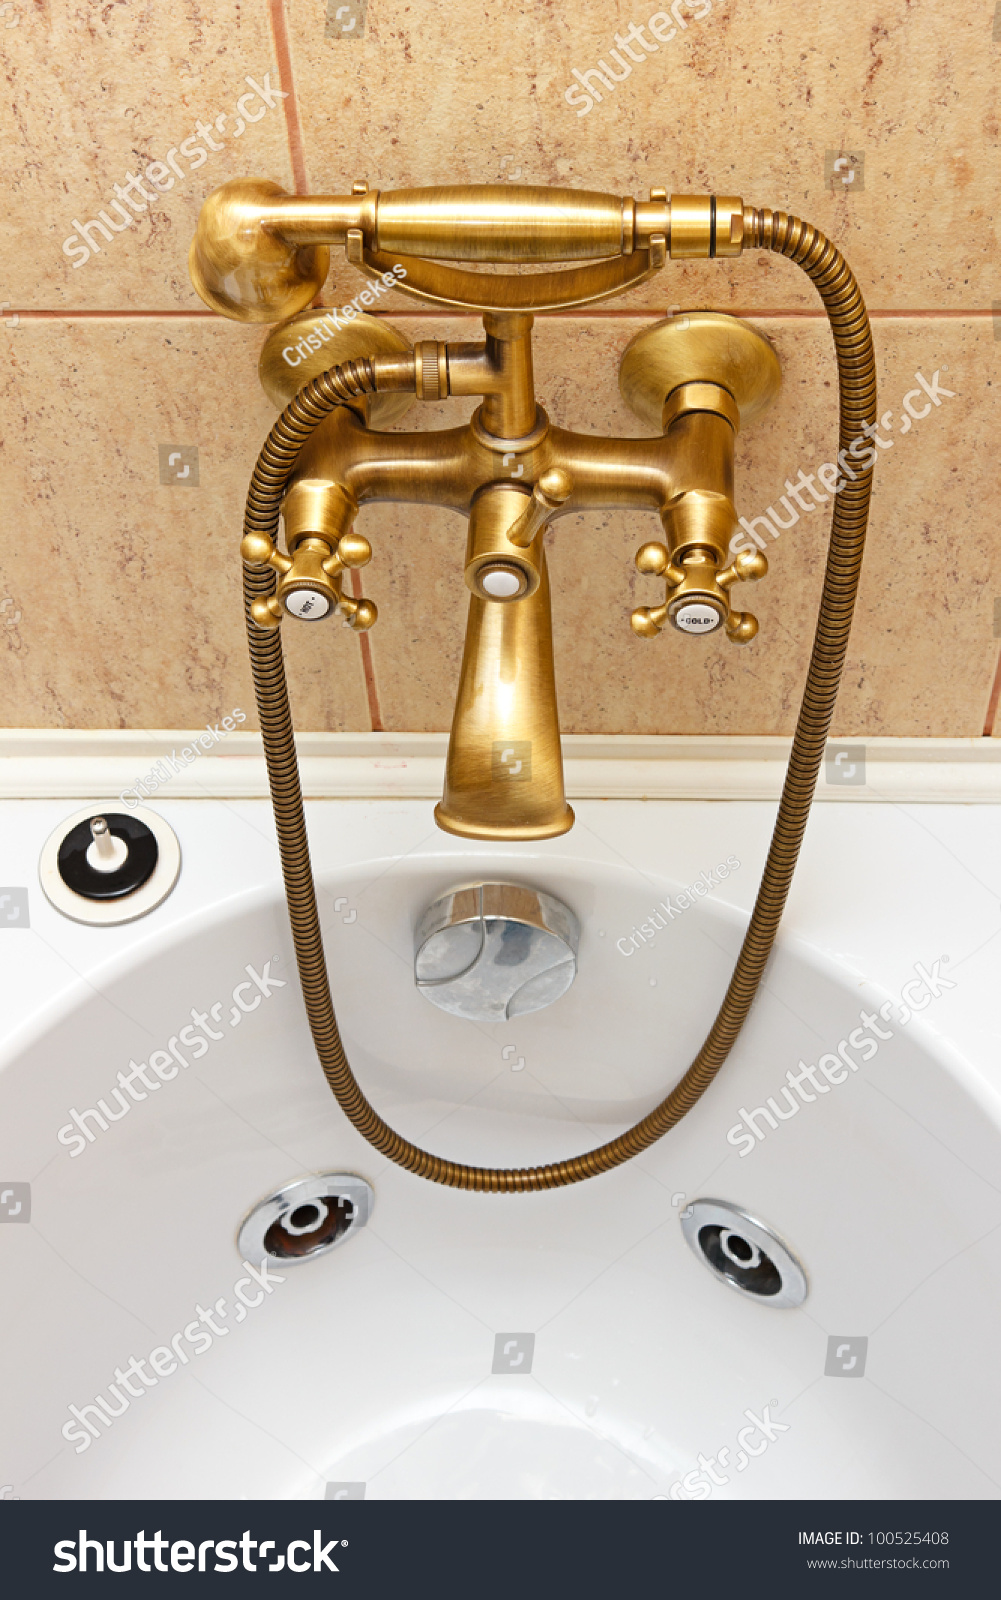 Vintage Bathtub Faucet Ceramic Tiles Background Bathtub Stock Photo ...